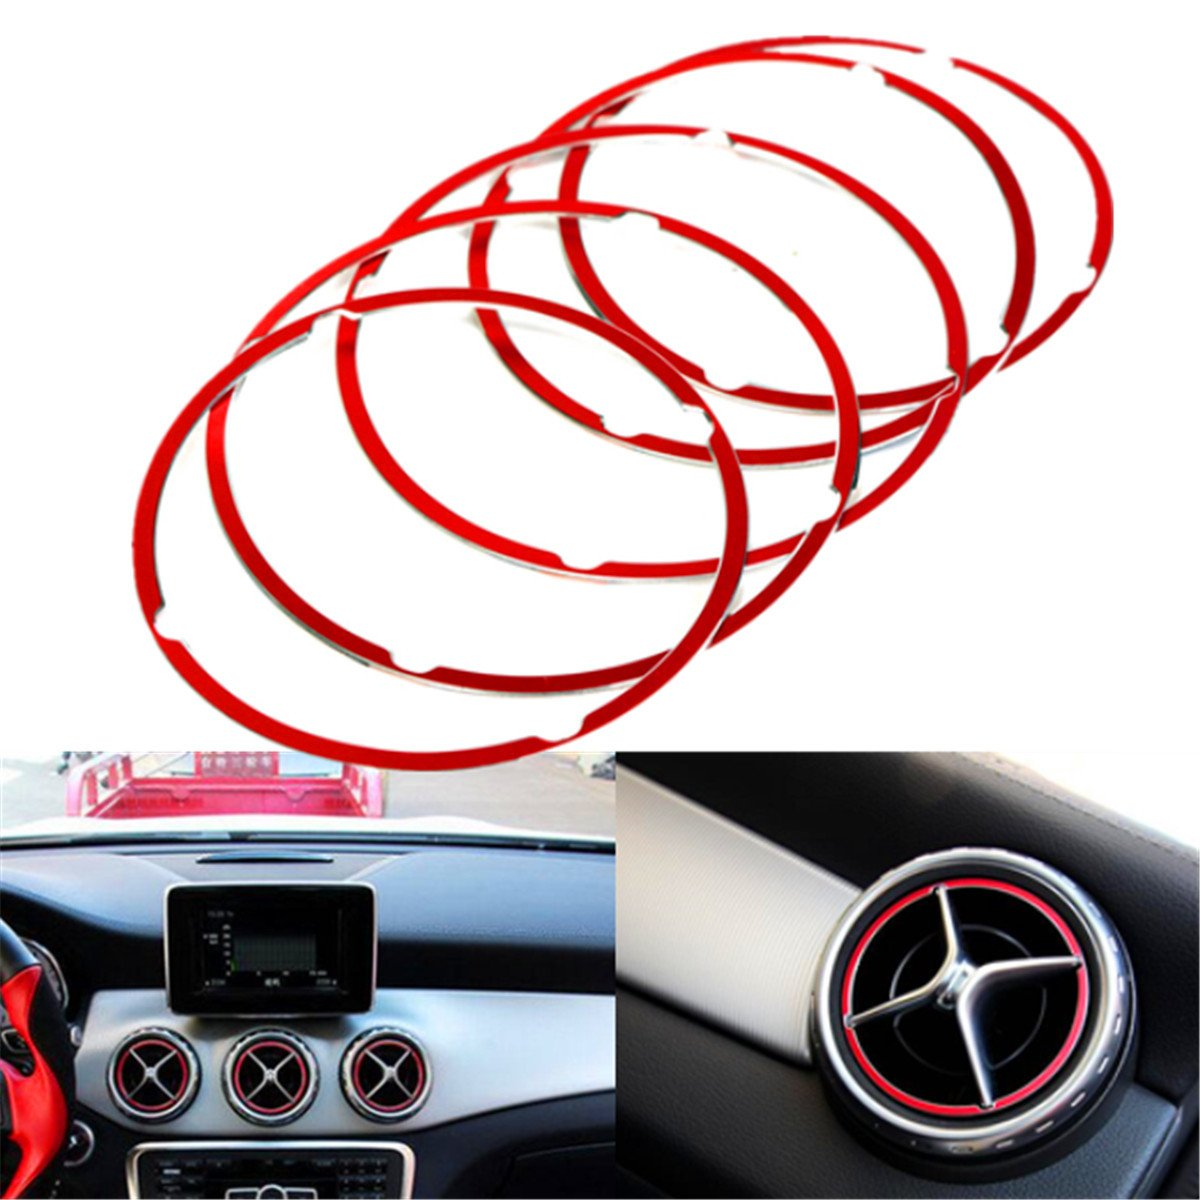 YONGYAO 5Pcs Red Air Vent Outlet Ring Cover For Mercedes Benz Cla Gla180 200 220 260